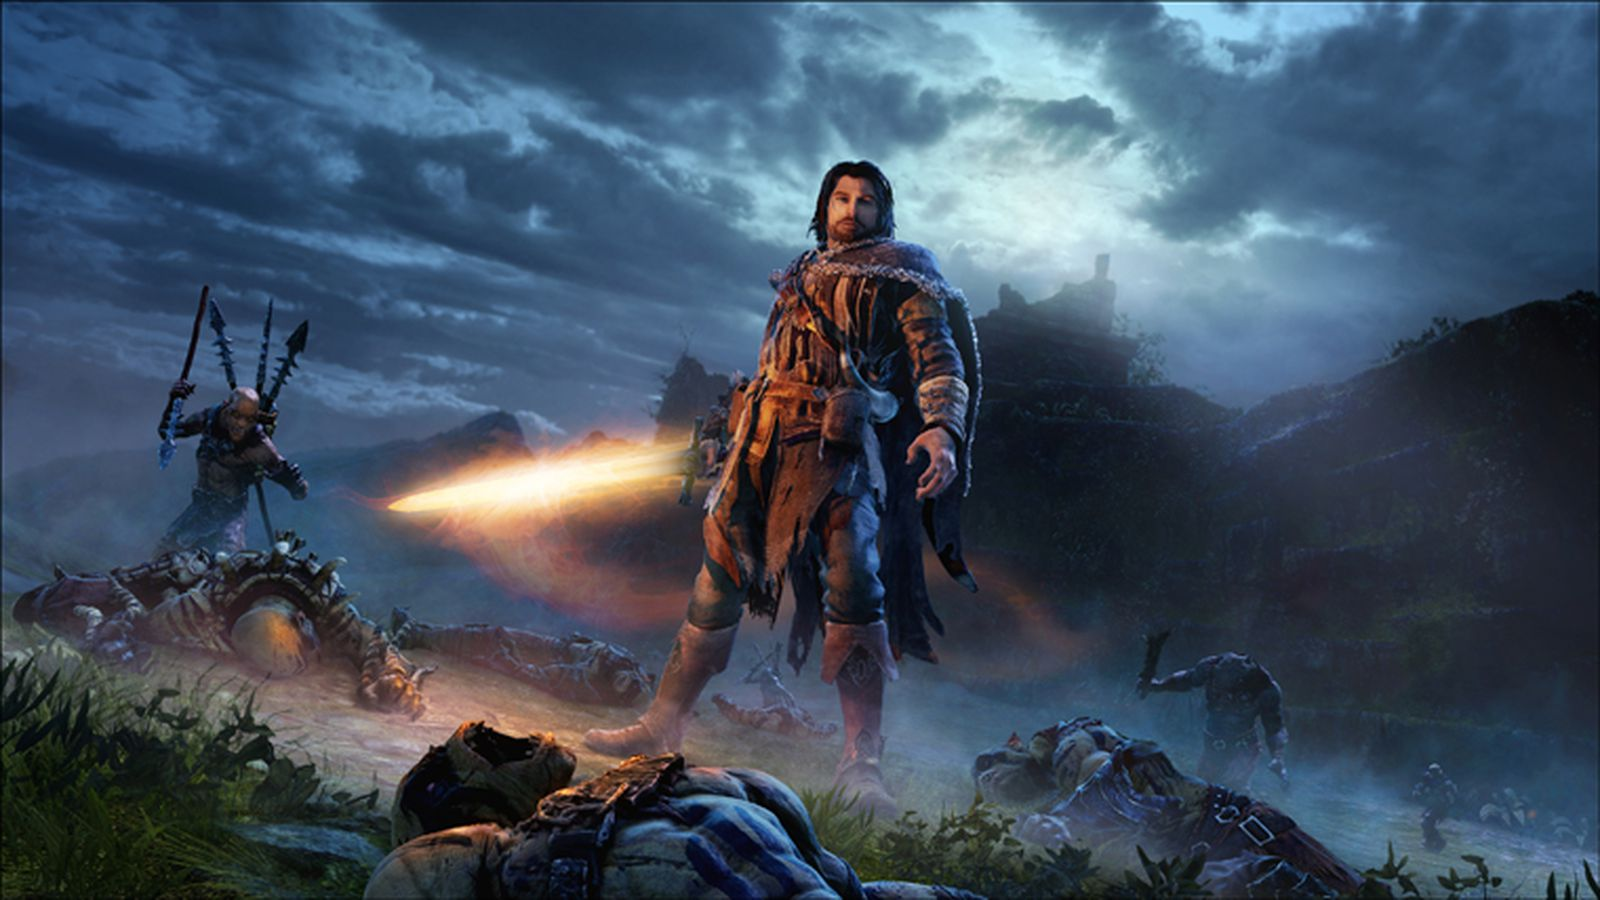 Fall Witch Wallpaper Kissing Vs Killing How Shadow Of Mordor Fails At